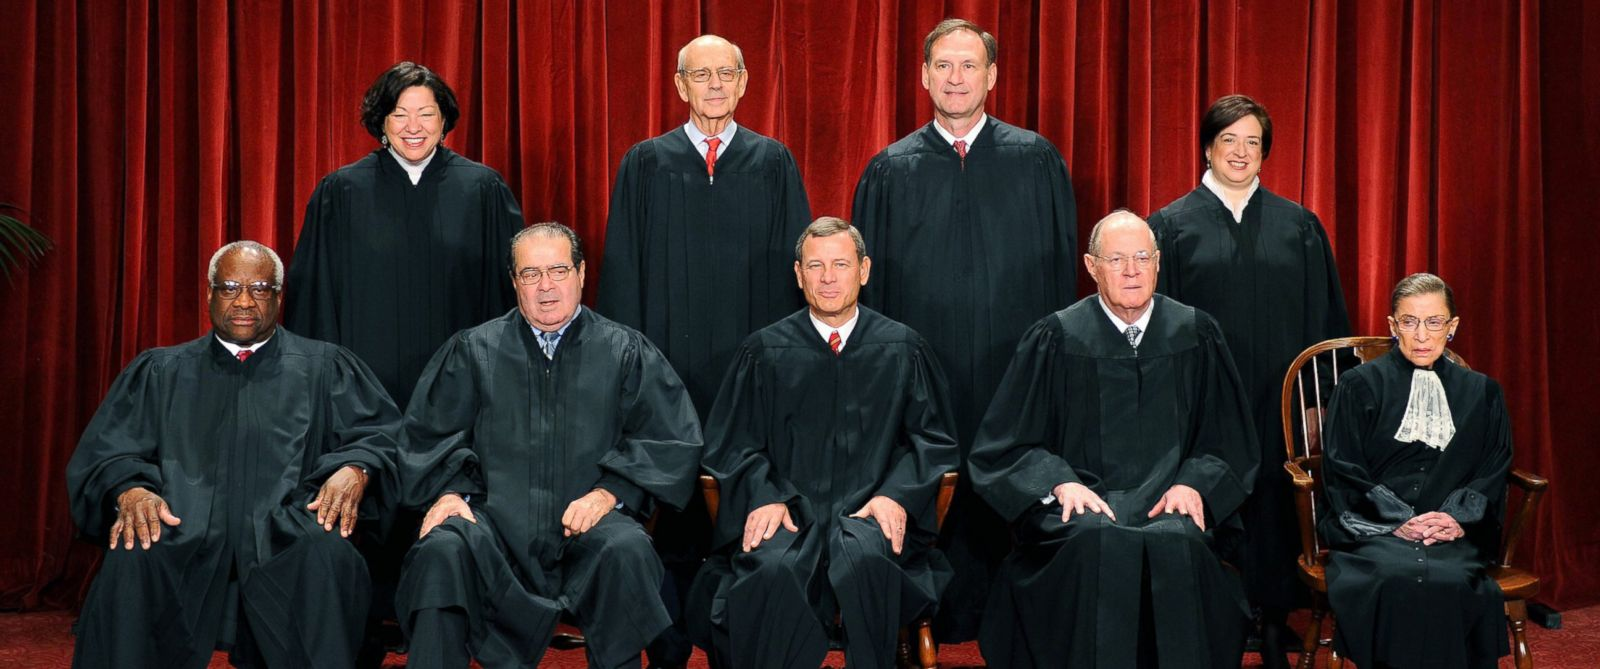 PHOTO: The Justices of the U.S. Supreme Court sit for their official photograph on Oct. 8, 2010 at the Supreme Court in Washington.